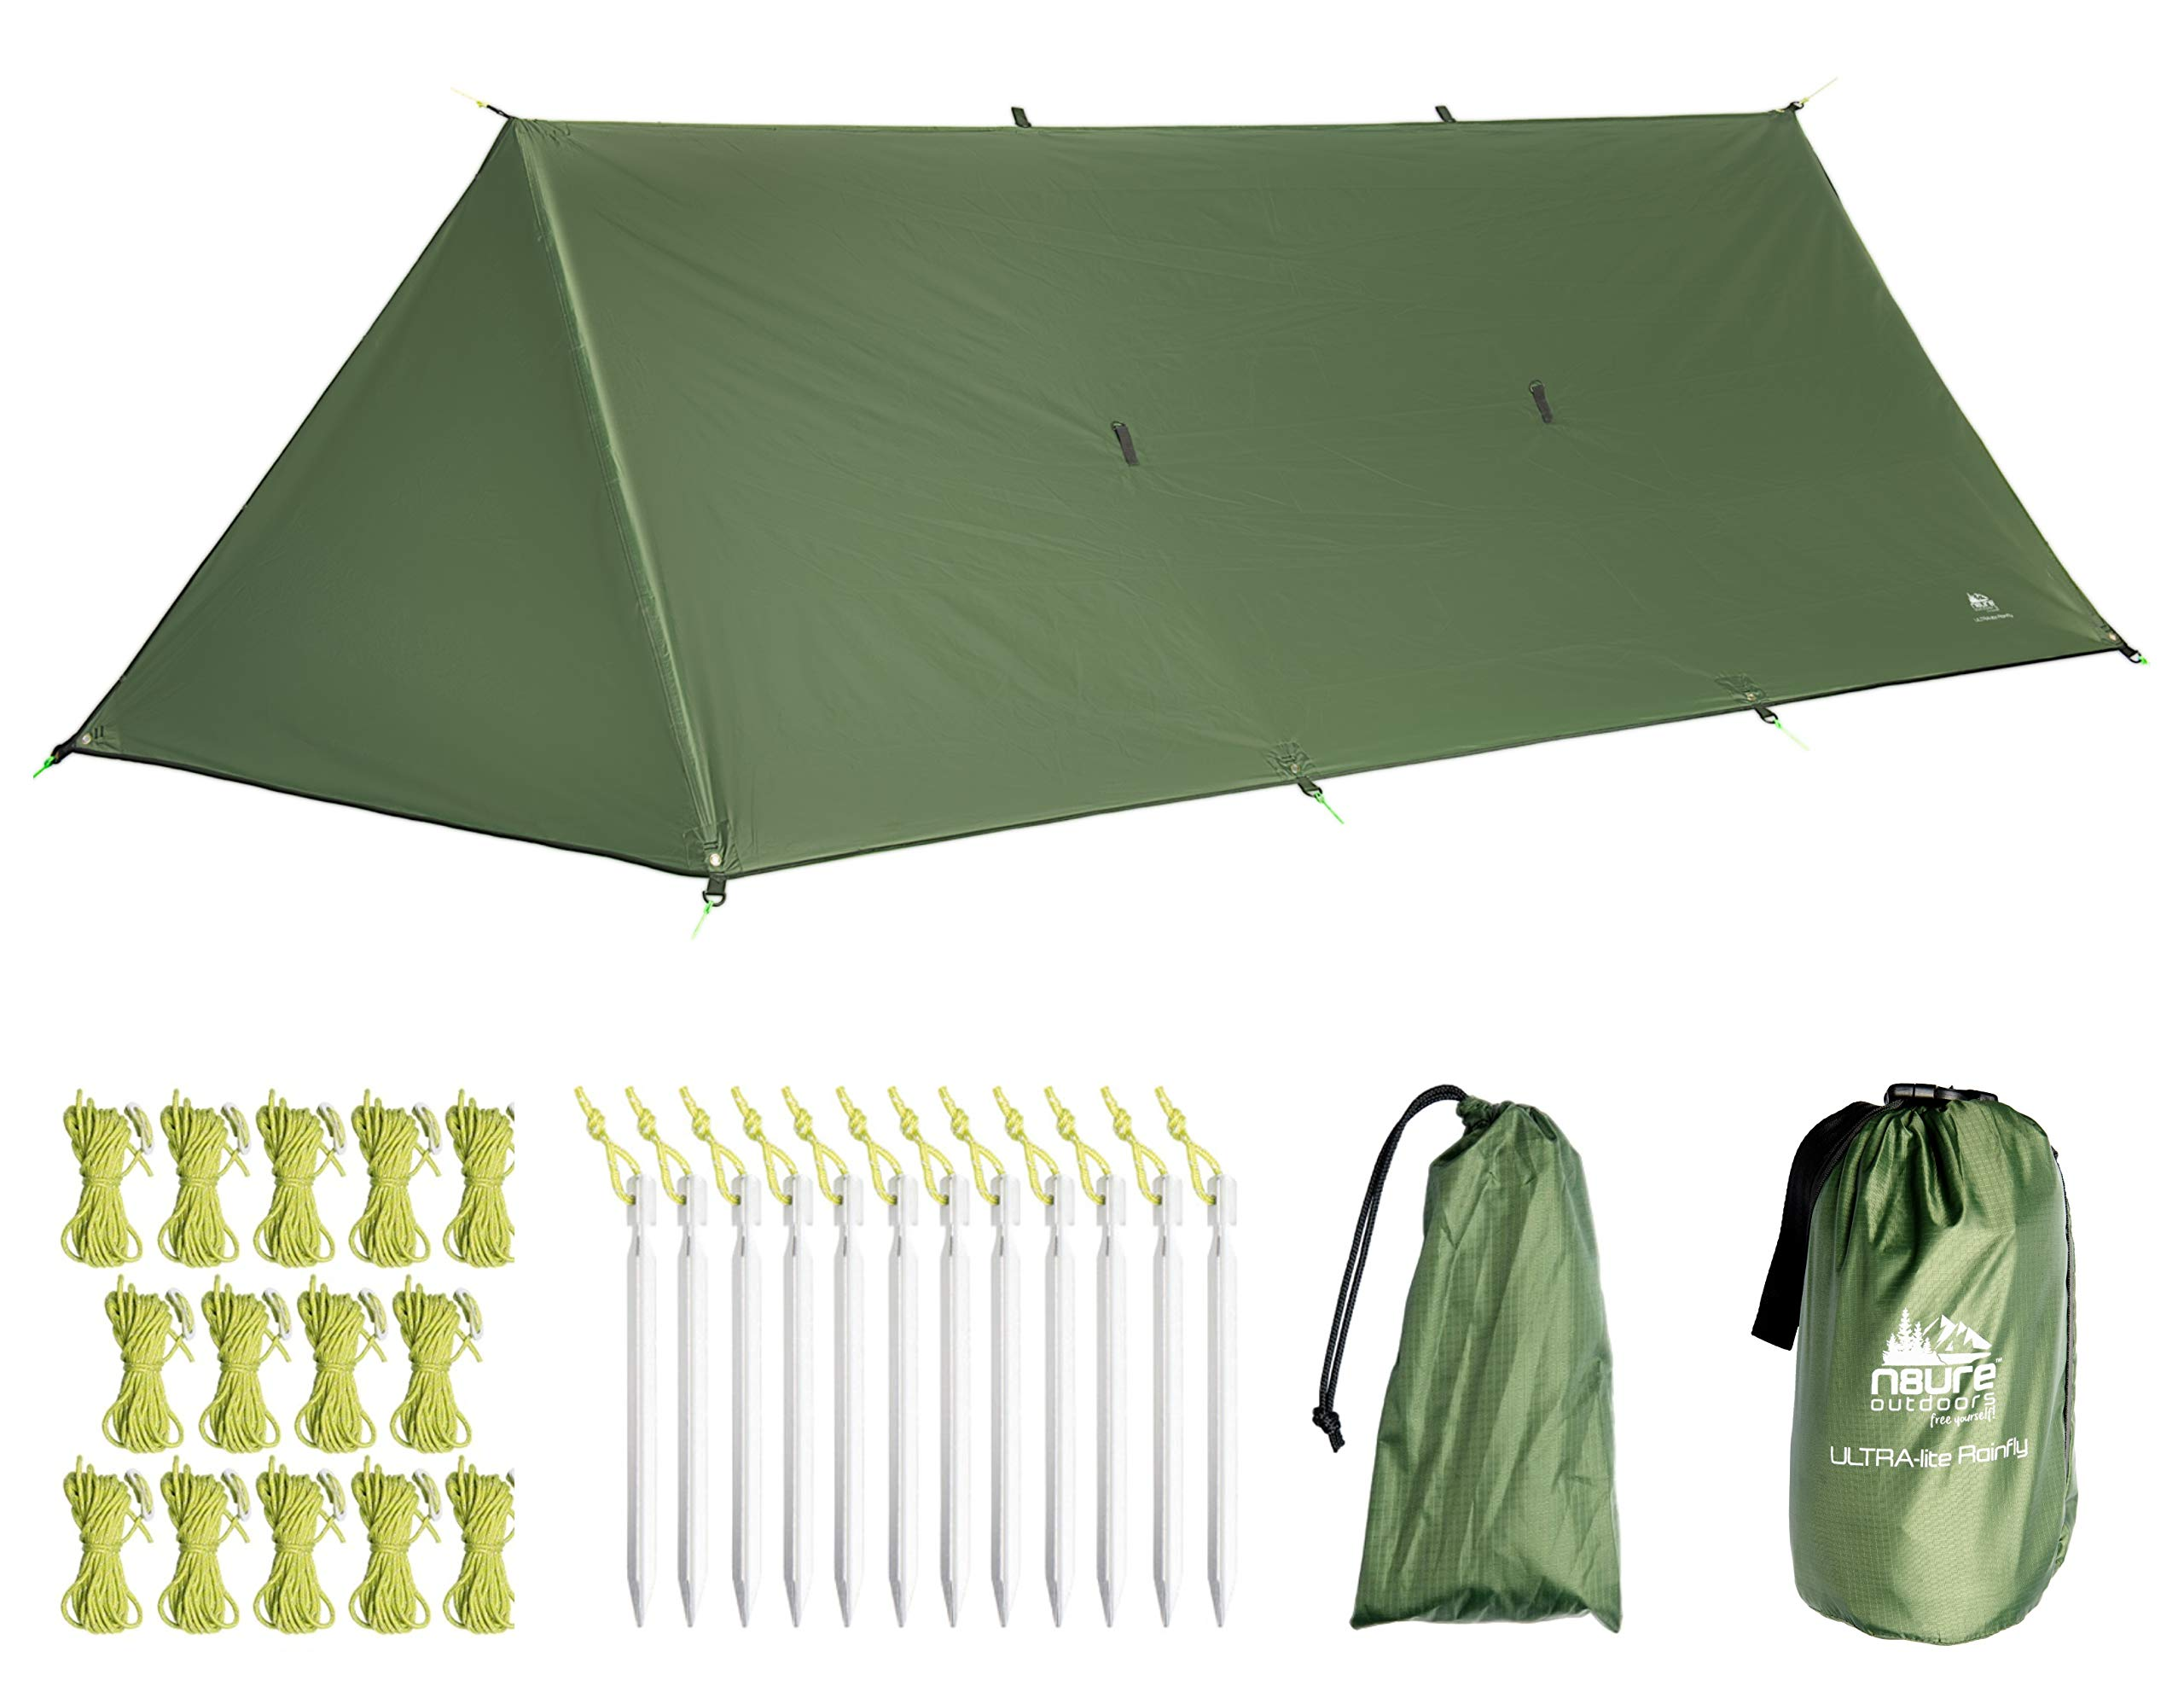 Camping Rain Fly Tarp 16'x10' with Doors Premium Ultralight Tent Ripstop Nylon Waterproof Hammock Sun Shelter 20x Tie-Outs Backpack Hike Travel Bushcraft Survival Gear Includes Stakes Ropes Stuff Sack